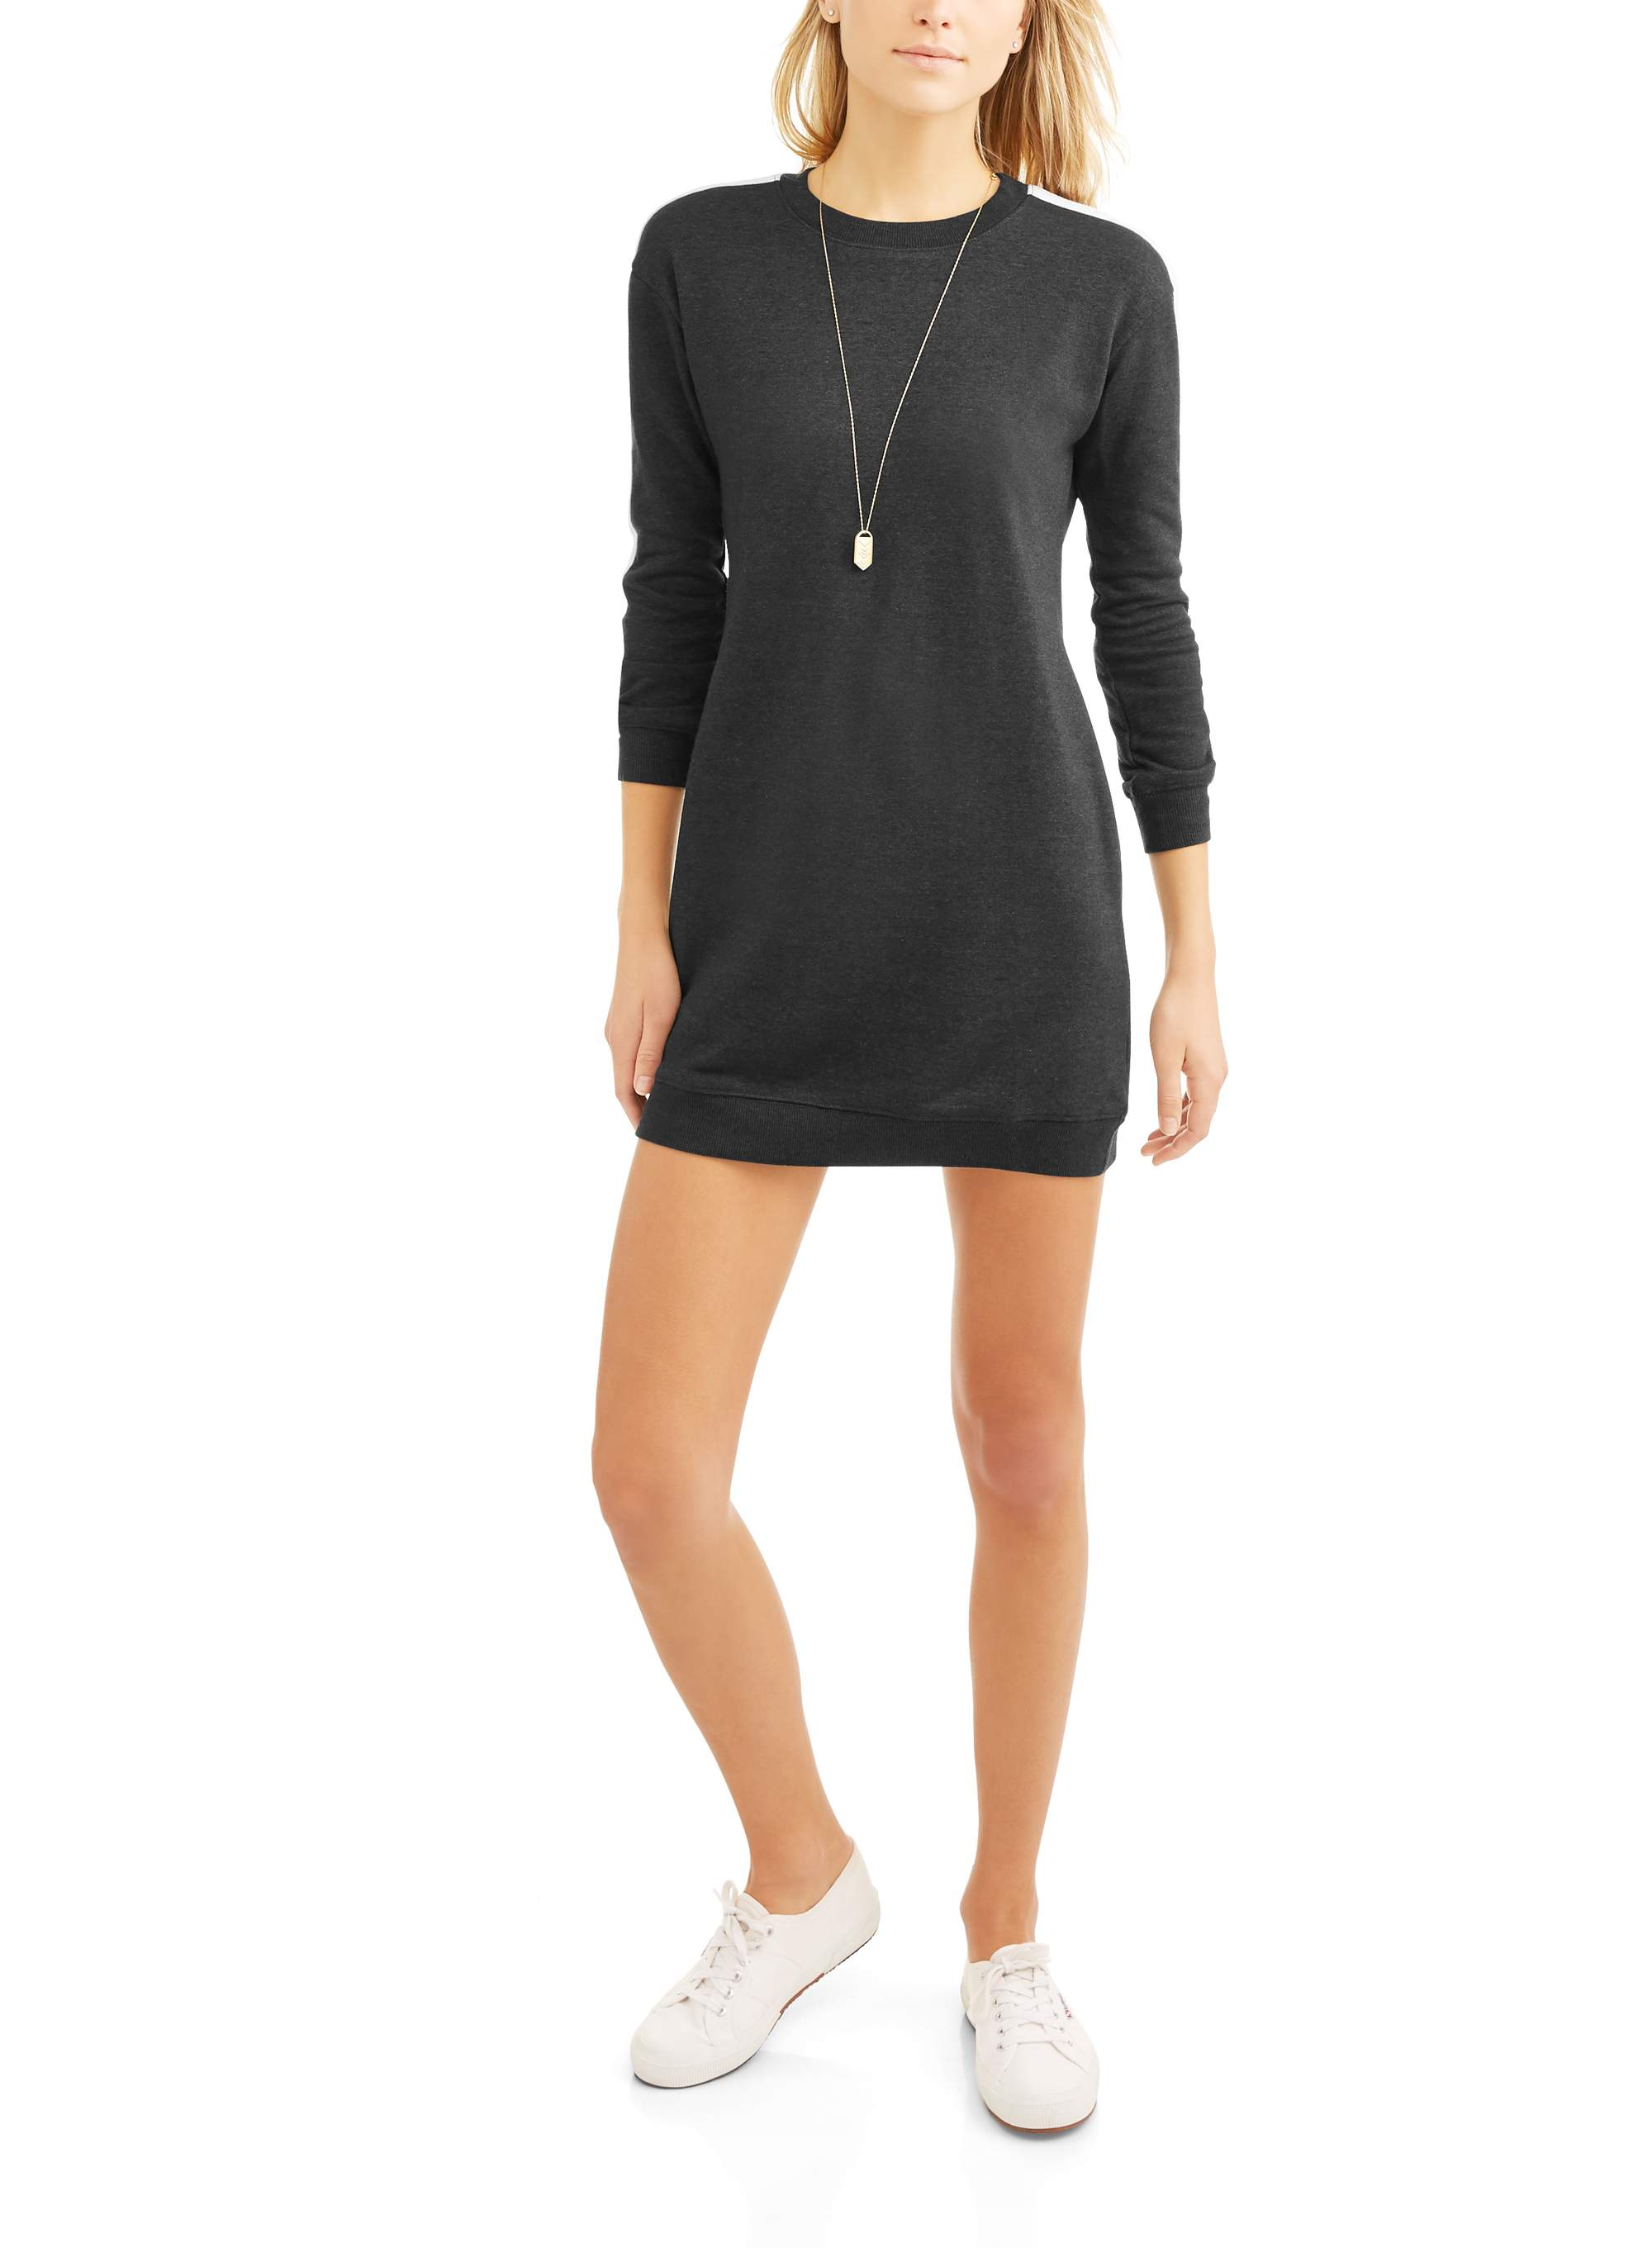 No Comment - Women s Athleisure Sweatshirt Dress with Athletic Side Stripe  - Walmart.com dd43f72d6536